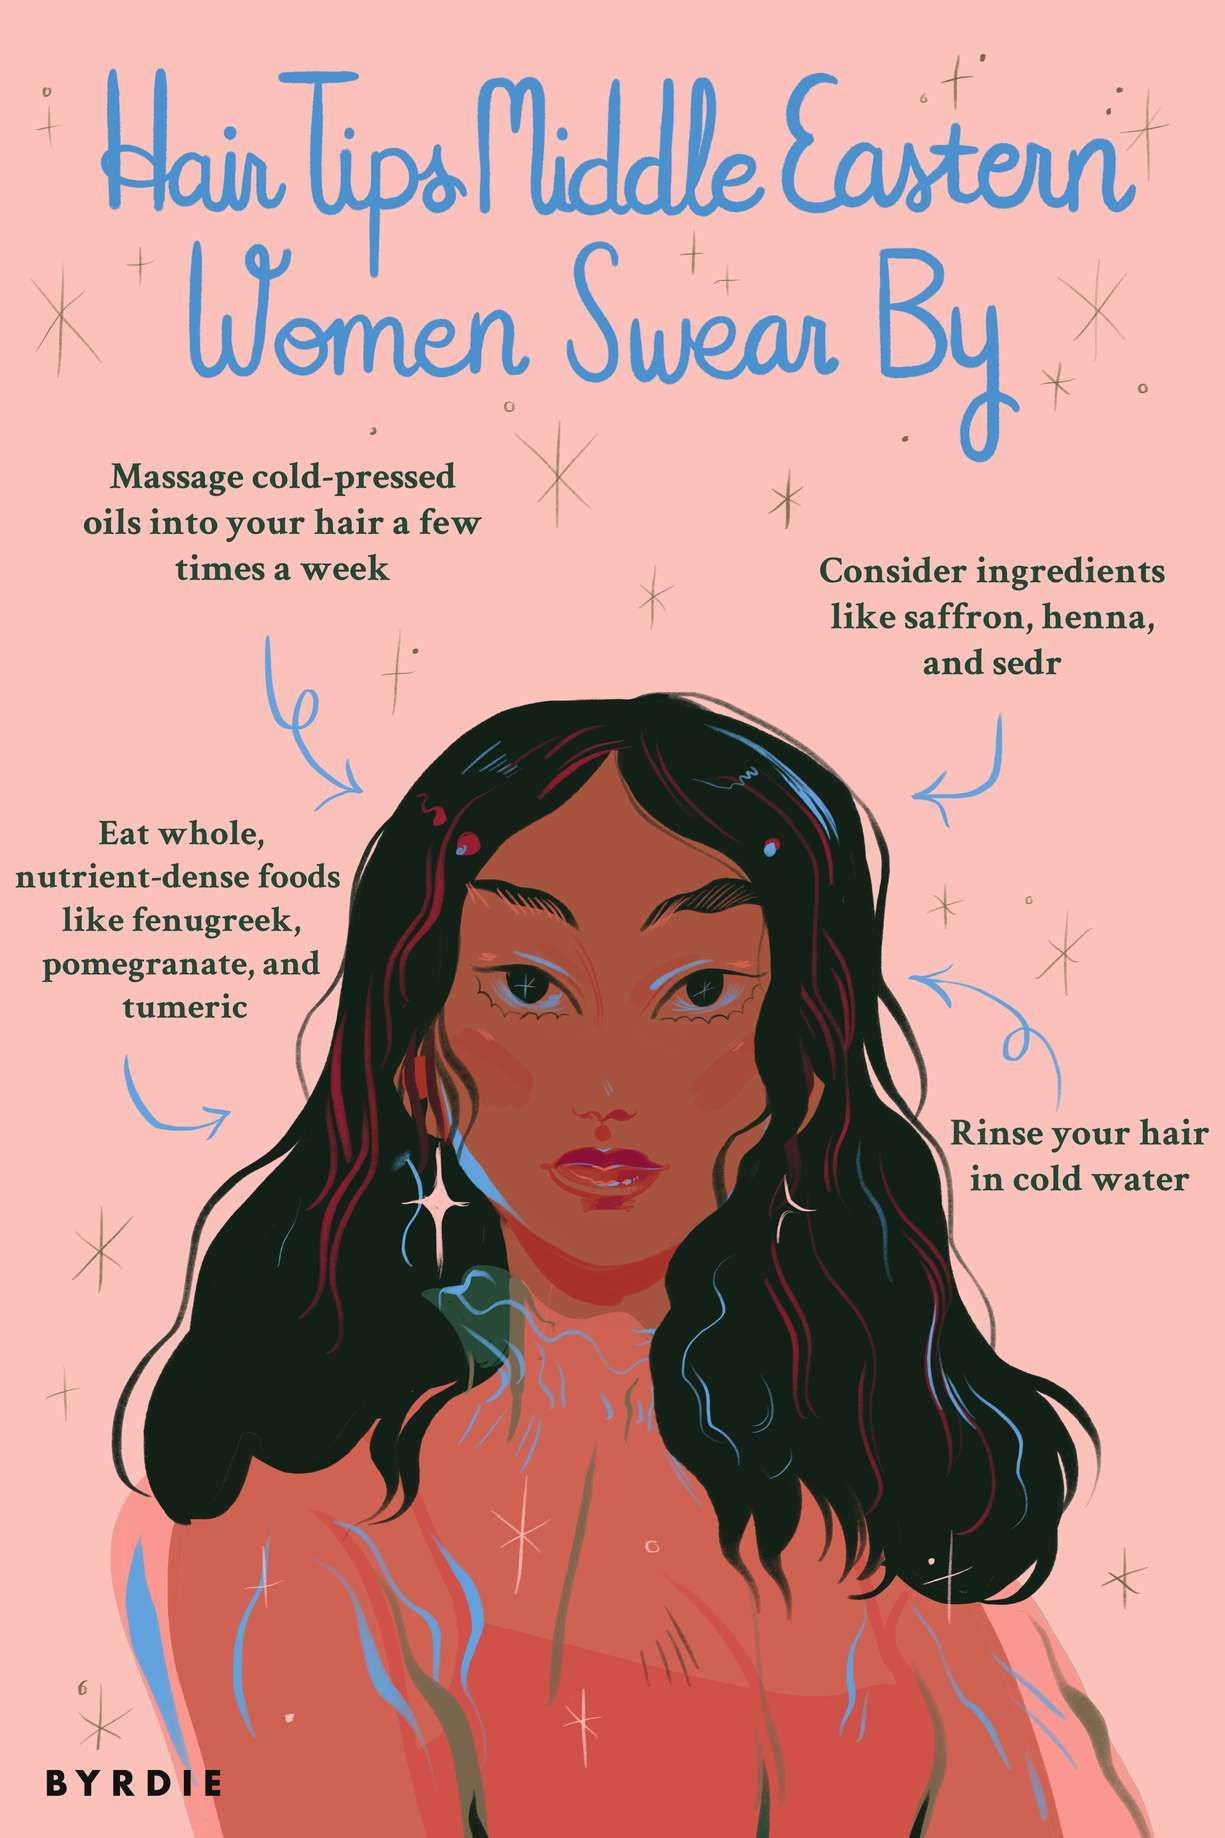 What Indian and Middle Eastern Women Know About Good Hair